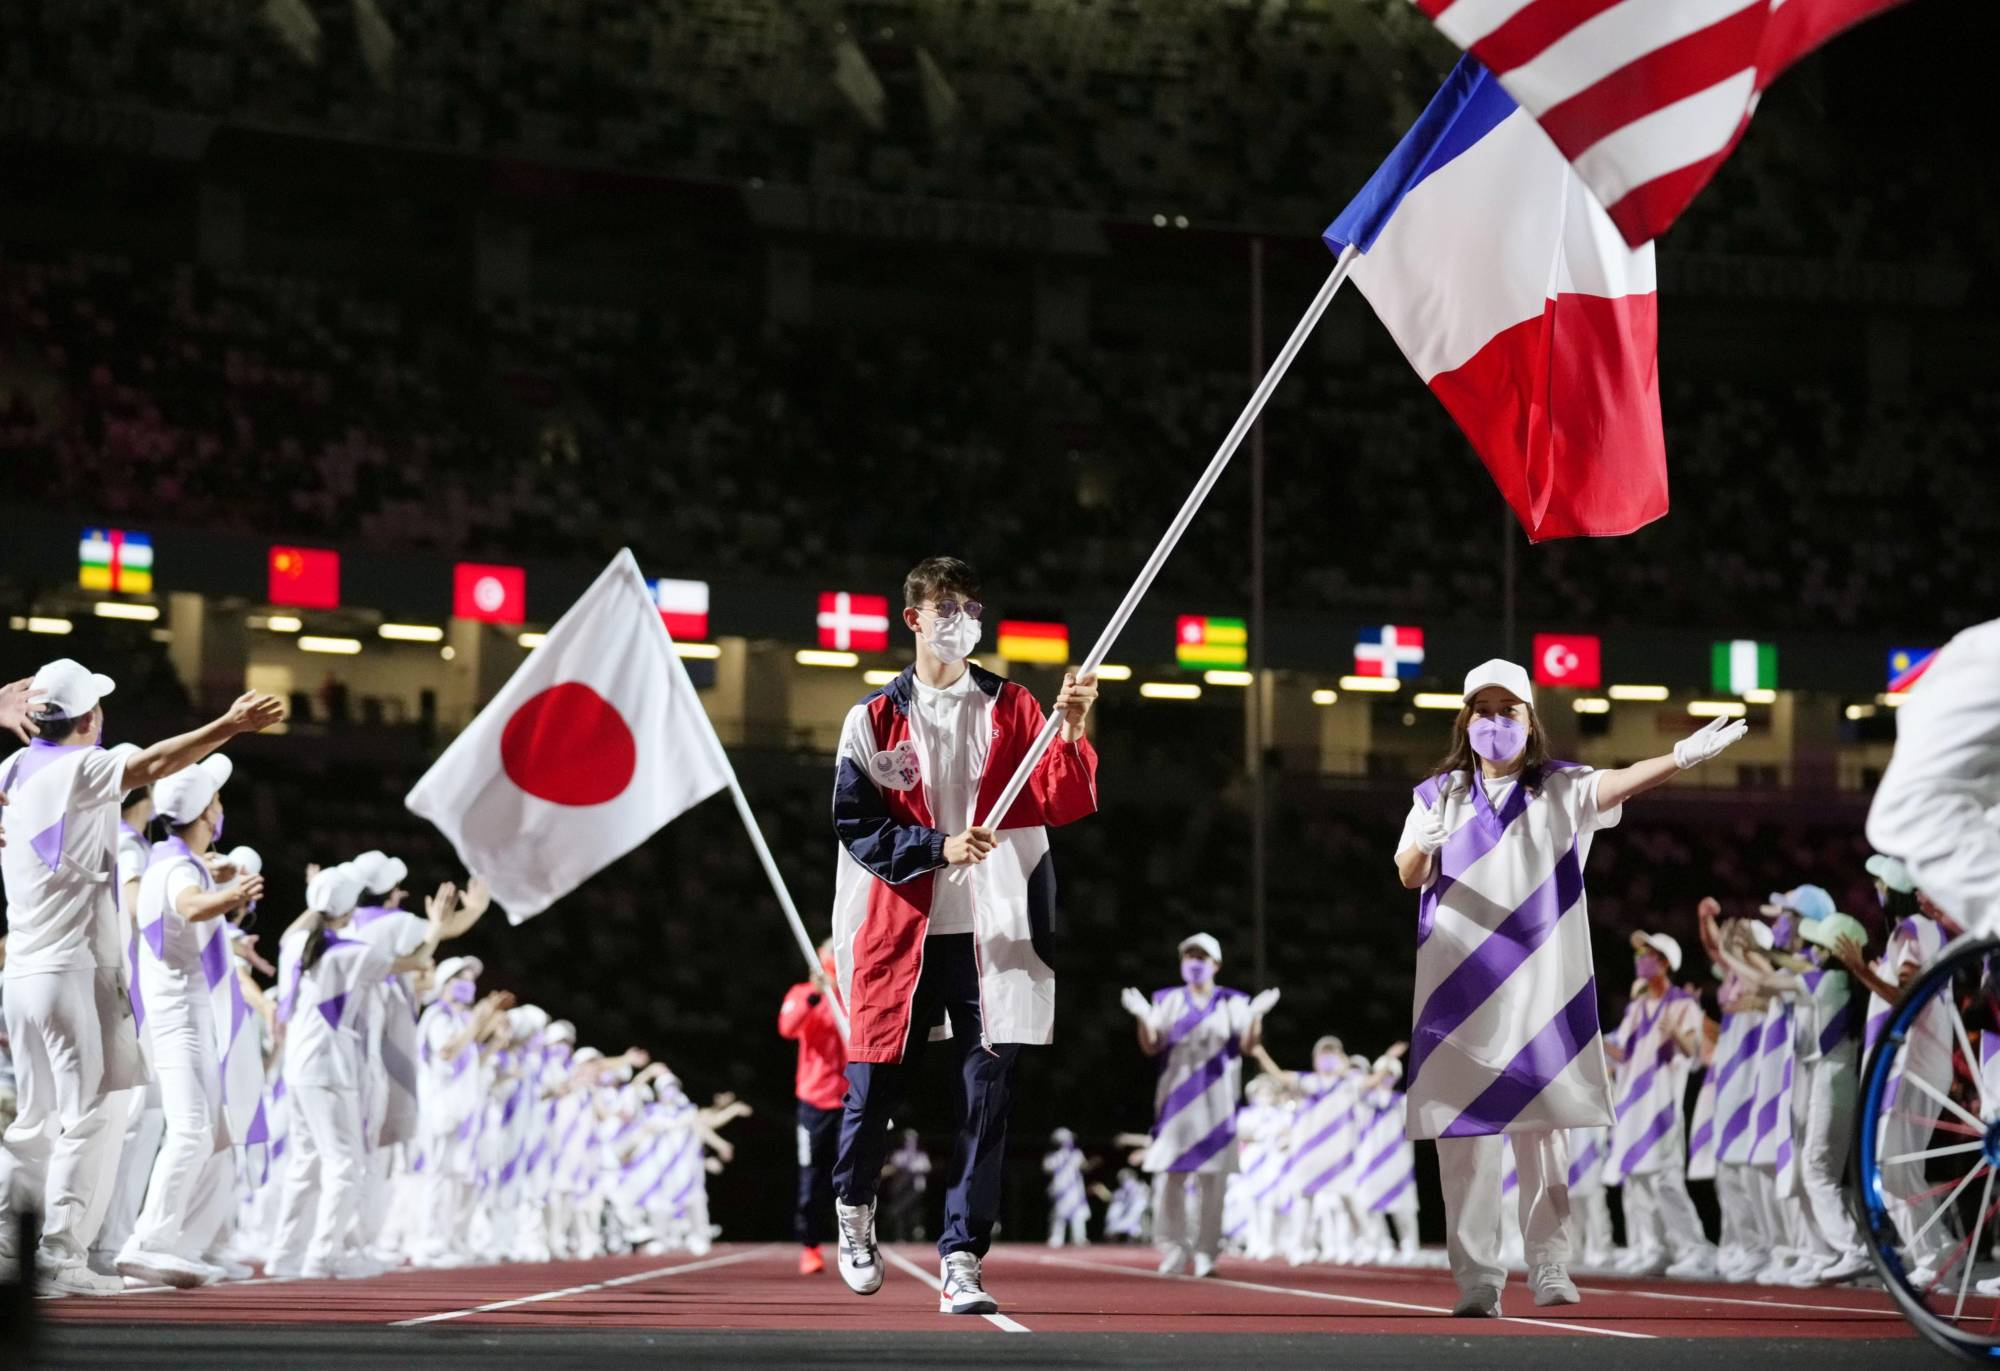 The French delegation's flag bearer enters the National Statdium ahead of Japan's flag bearer. | KYODO